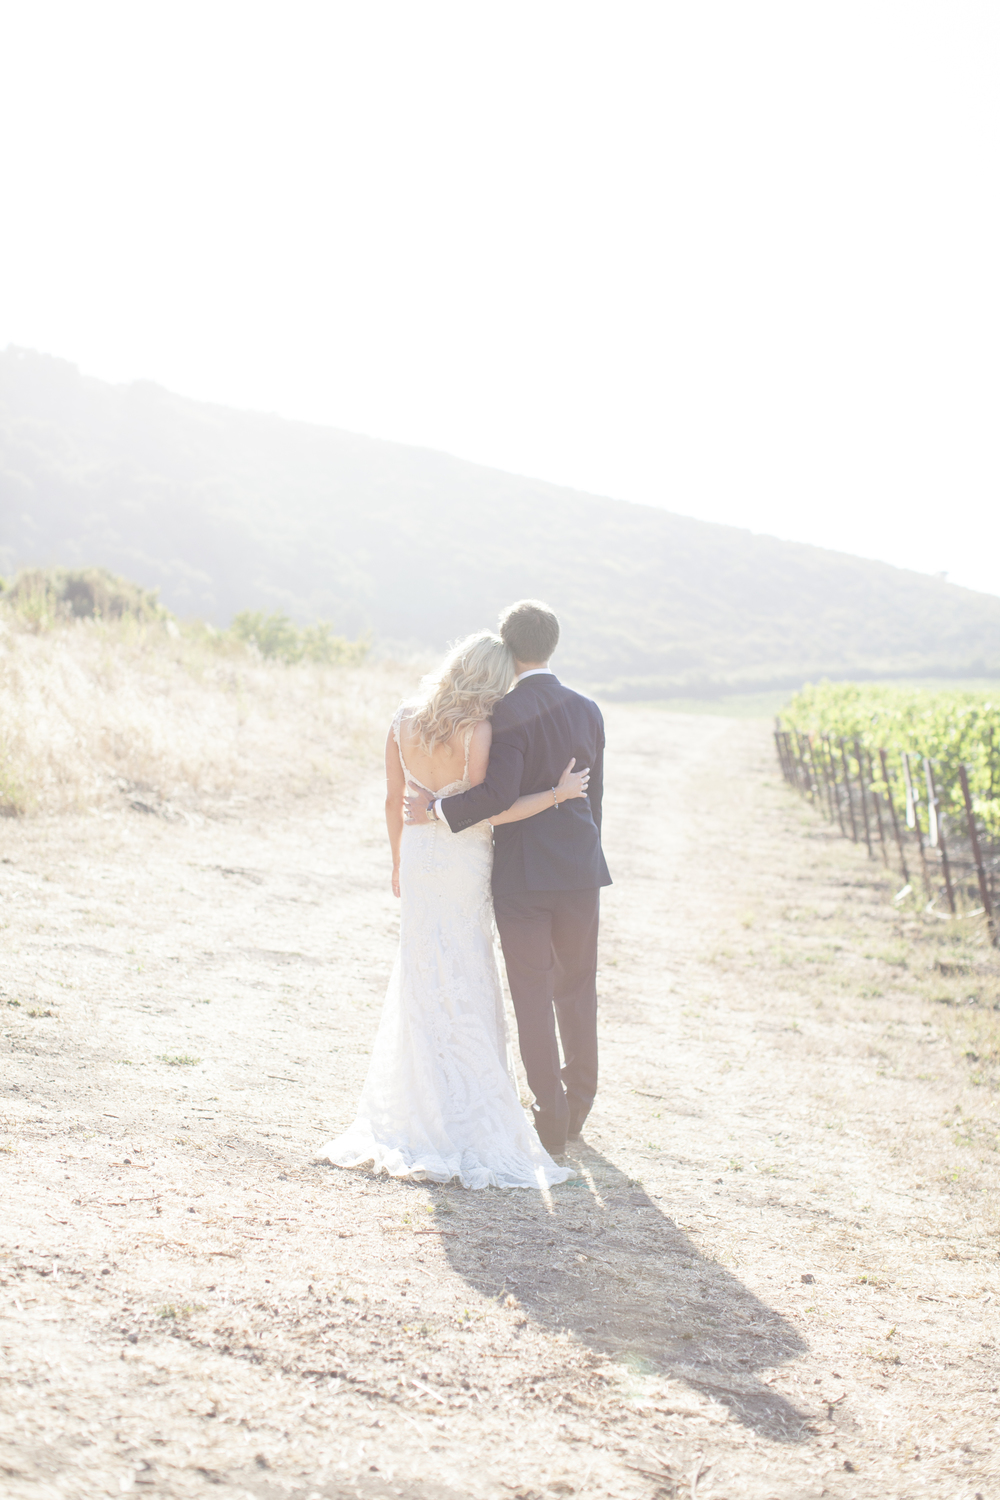 Romantic Sanford Winery wedding portrait  by San Luis Obispo wedding photographer Skyla Walton